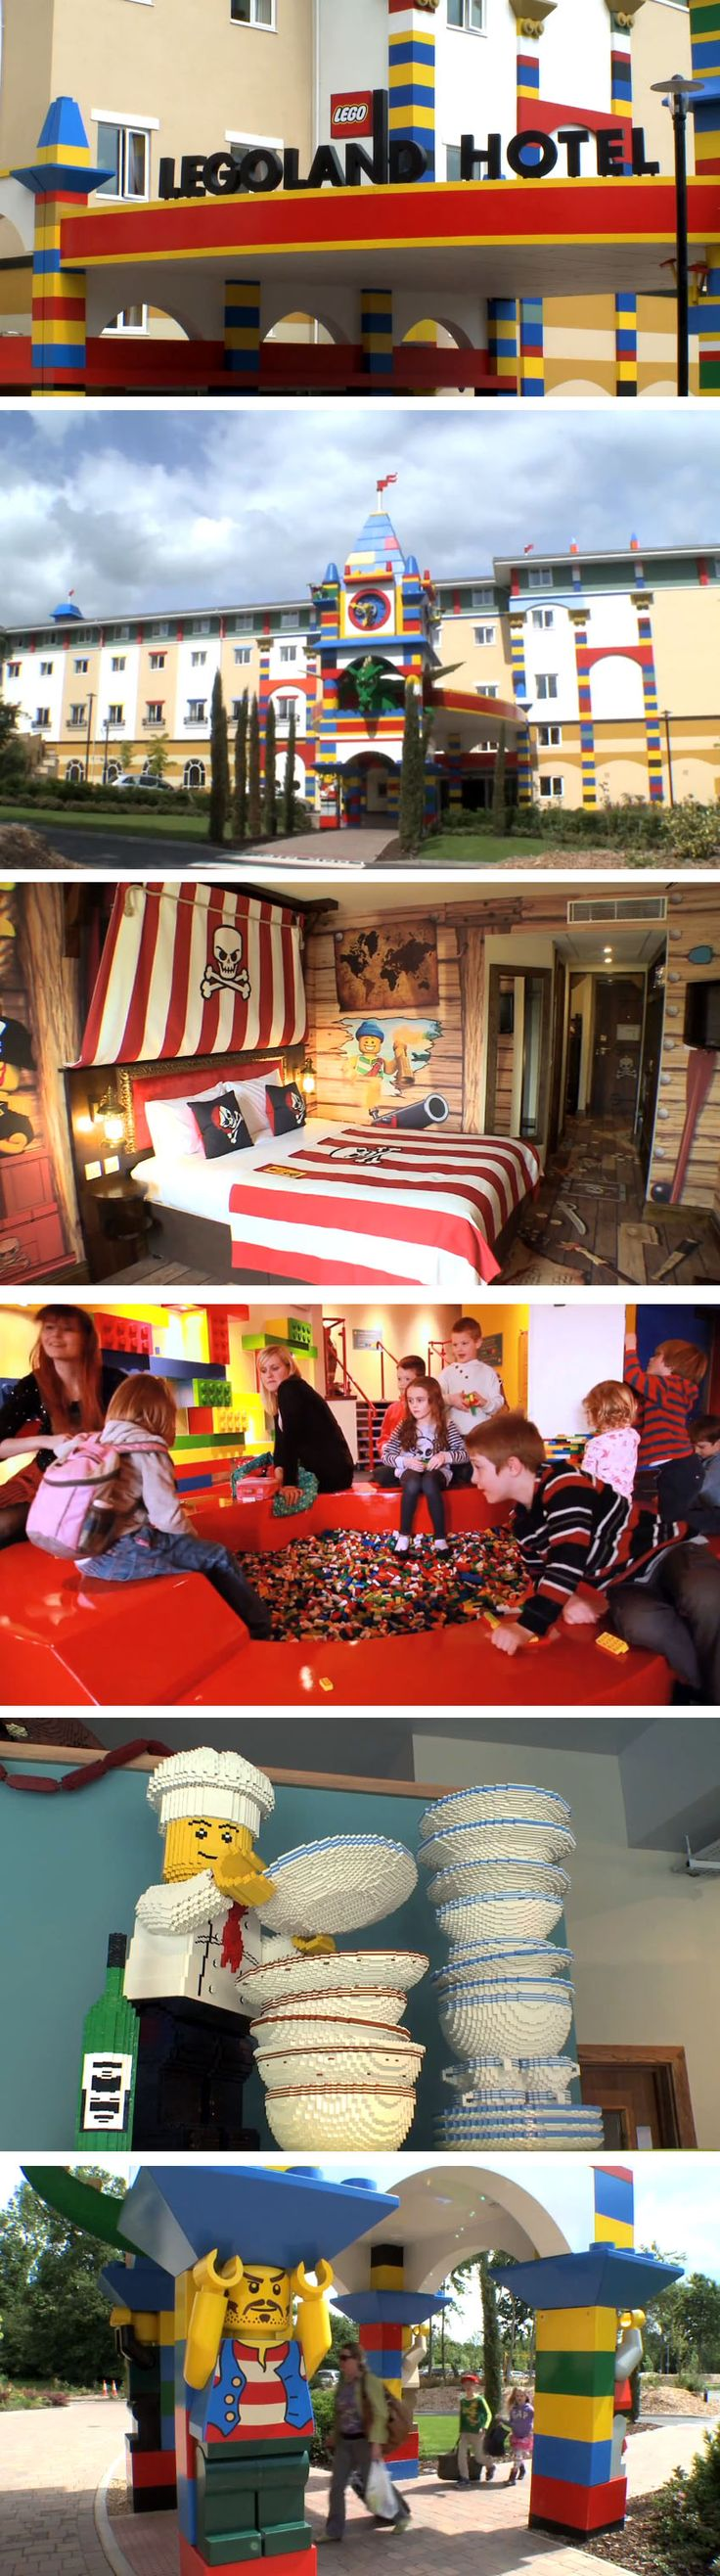 A real-life LEGO hotel. Next to the Legoland amusement park in Carlsbad, Calif., giving brick-loving kids (and kids at heart) a place to doze after bulldozing.